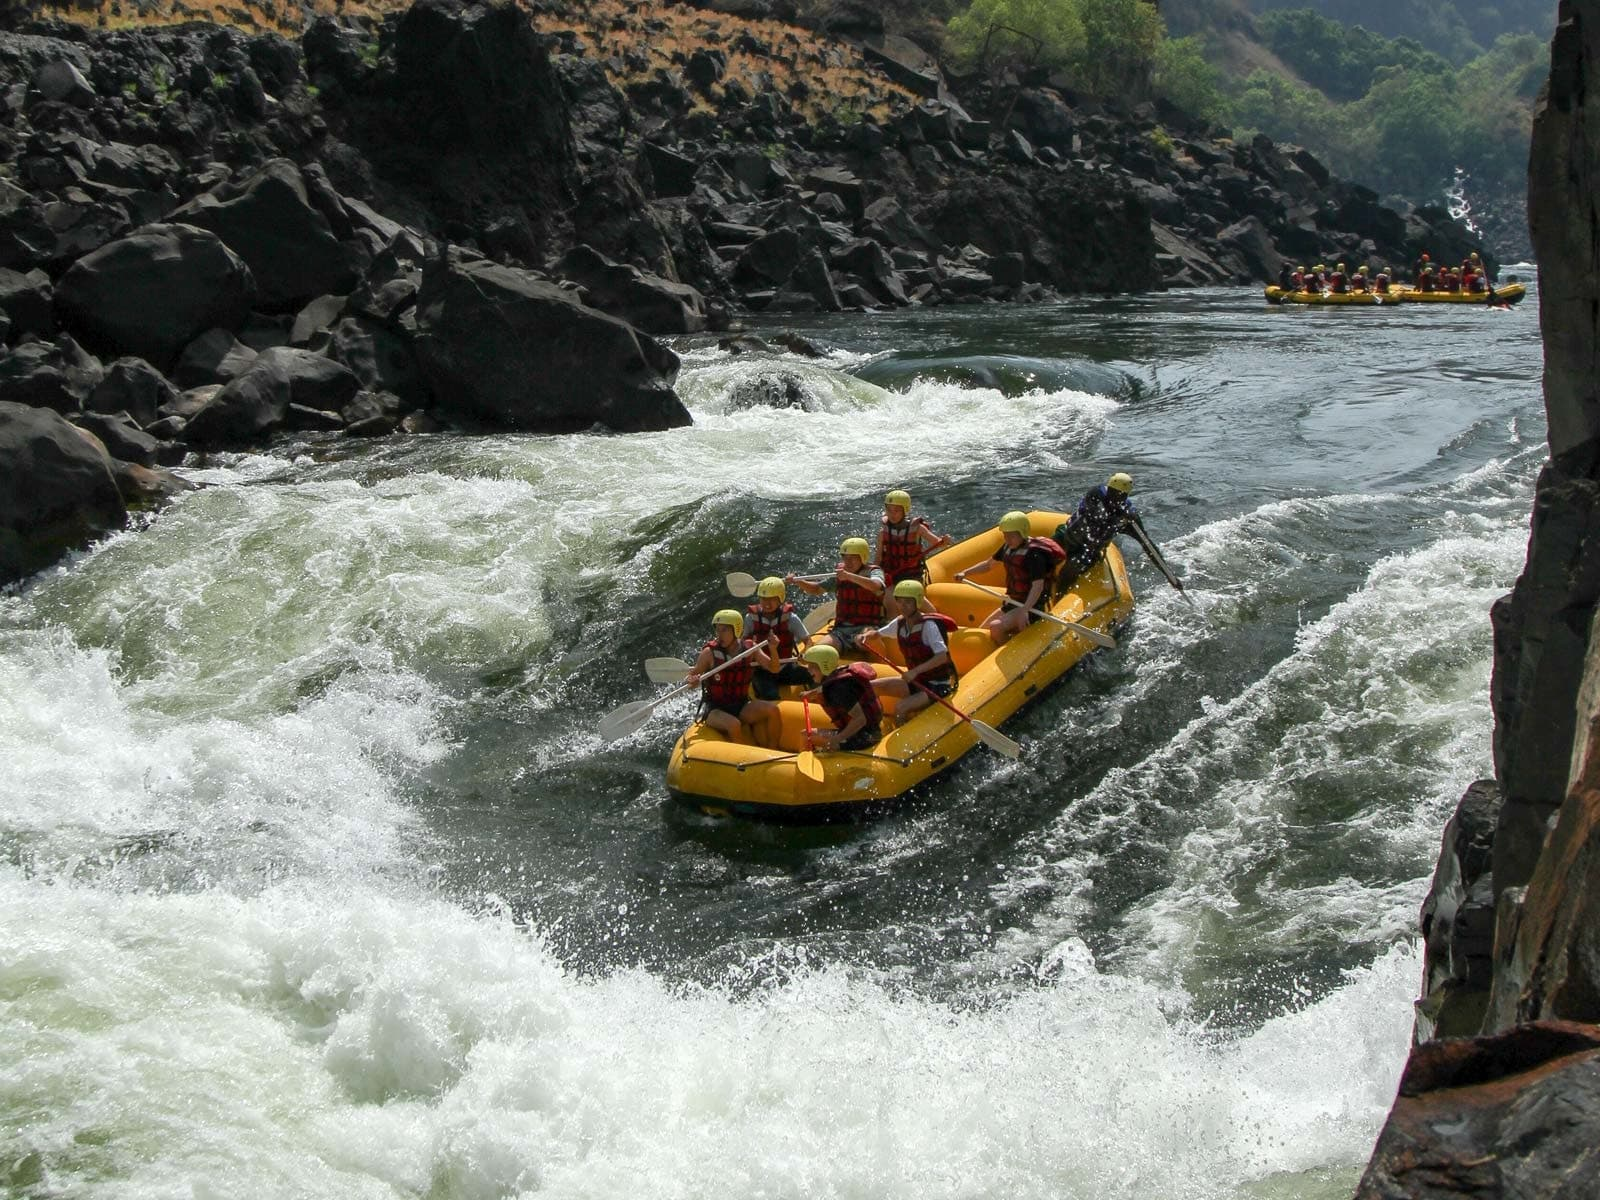 White water rafting is an adrenalin-junkie's dream